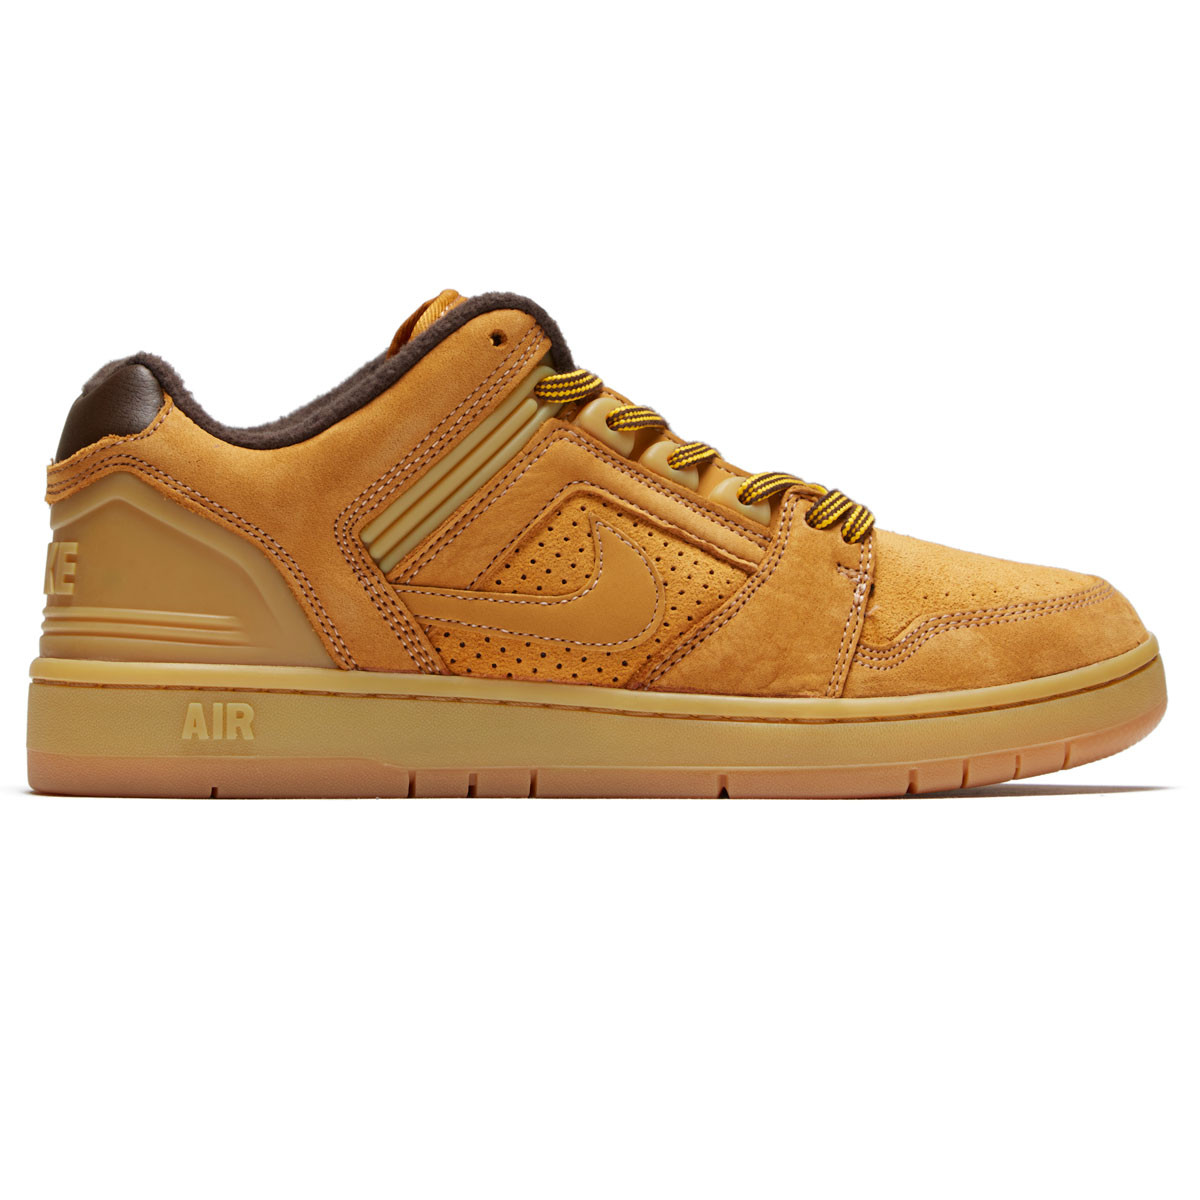 fee9436bf6cde Nike SB Air Force II Low Premium Shoes - Bronze Bronze Baroque Brown -